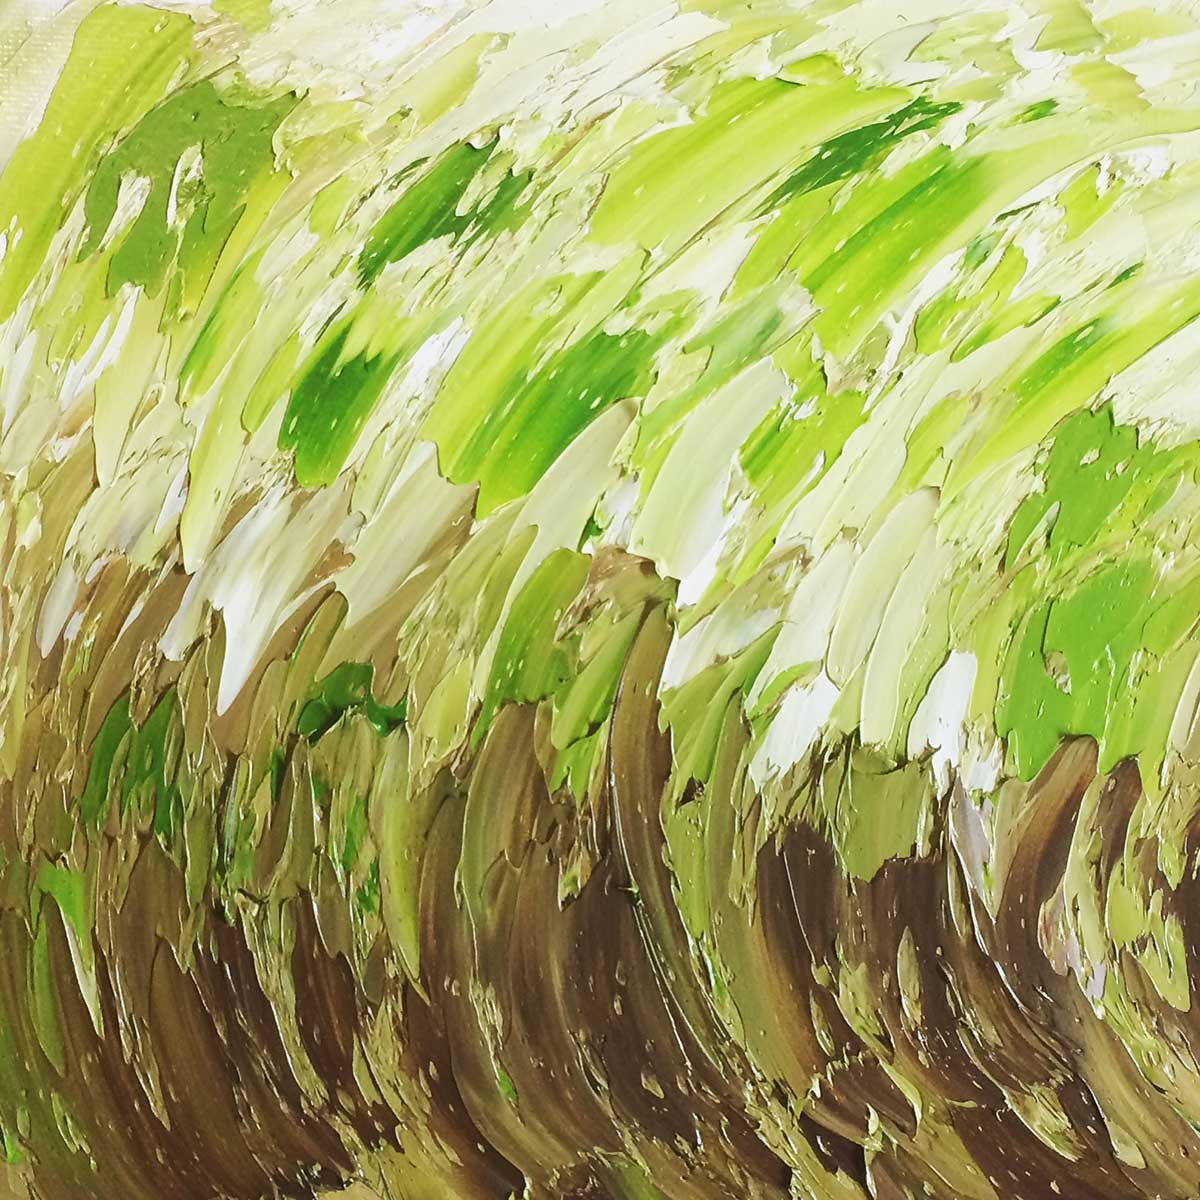 Converging, Green and Brown Oil Abstract Painting: 30 in 30 Painting Challenge 2018, with Transgender Artist Sophie Lawson